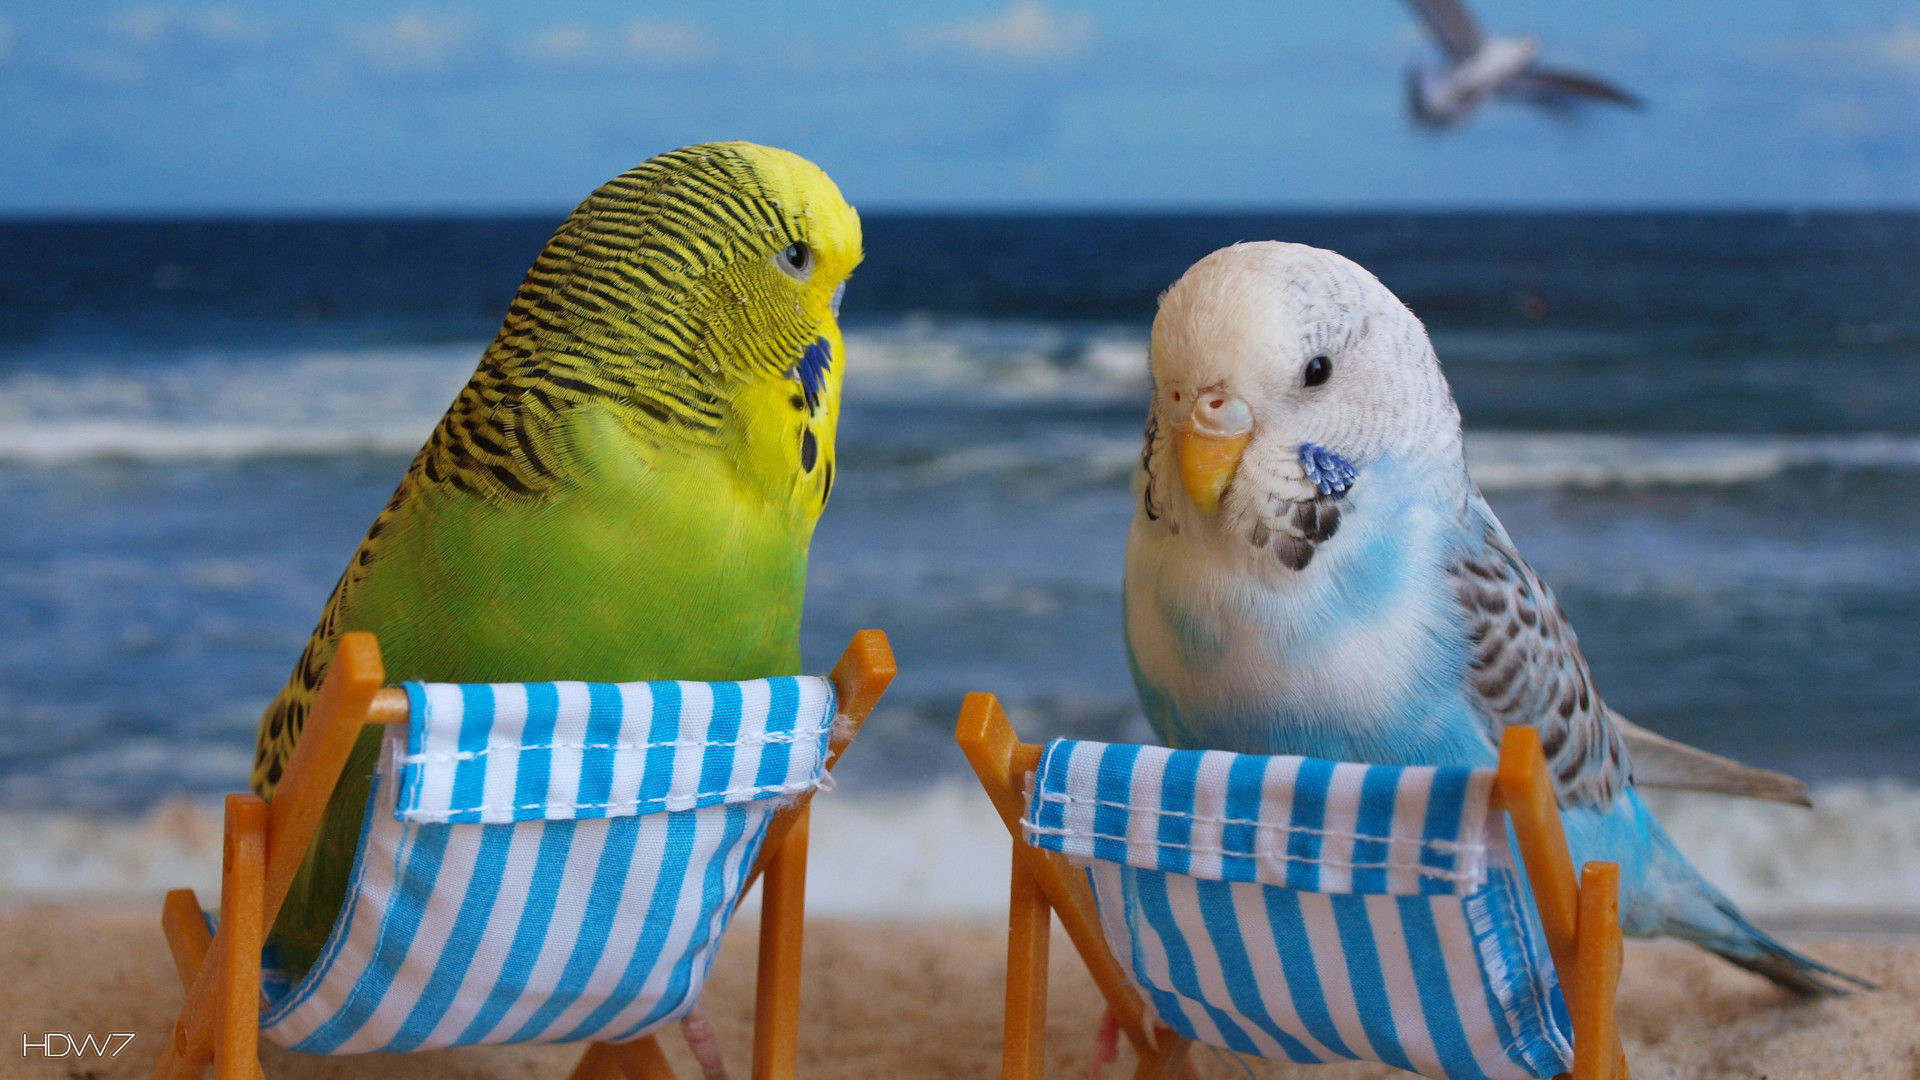 Funny+Parakeet budgie funny budgies birds beach | HD wallpaper gallery ... Running Away From Explosion Gif